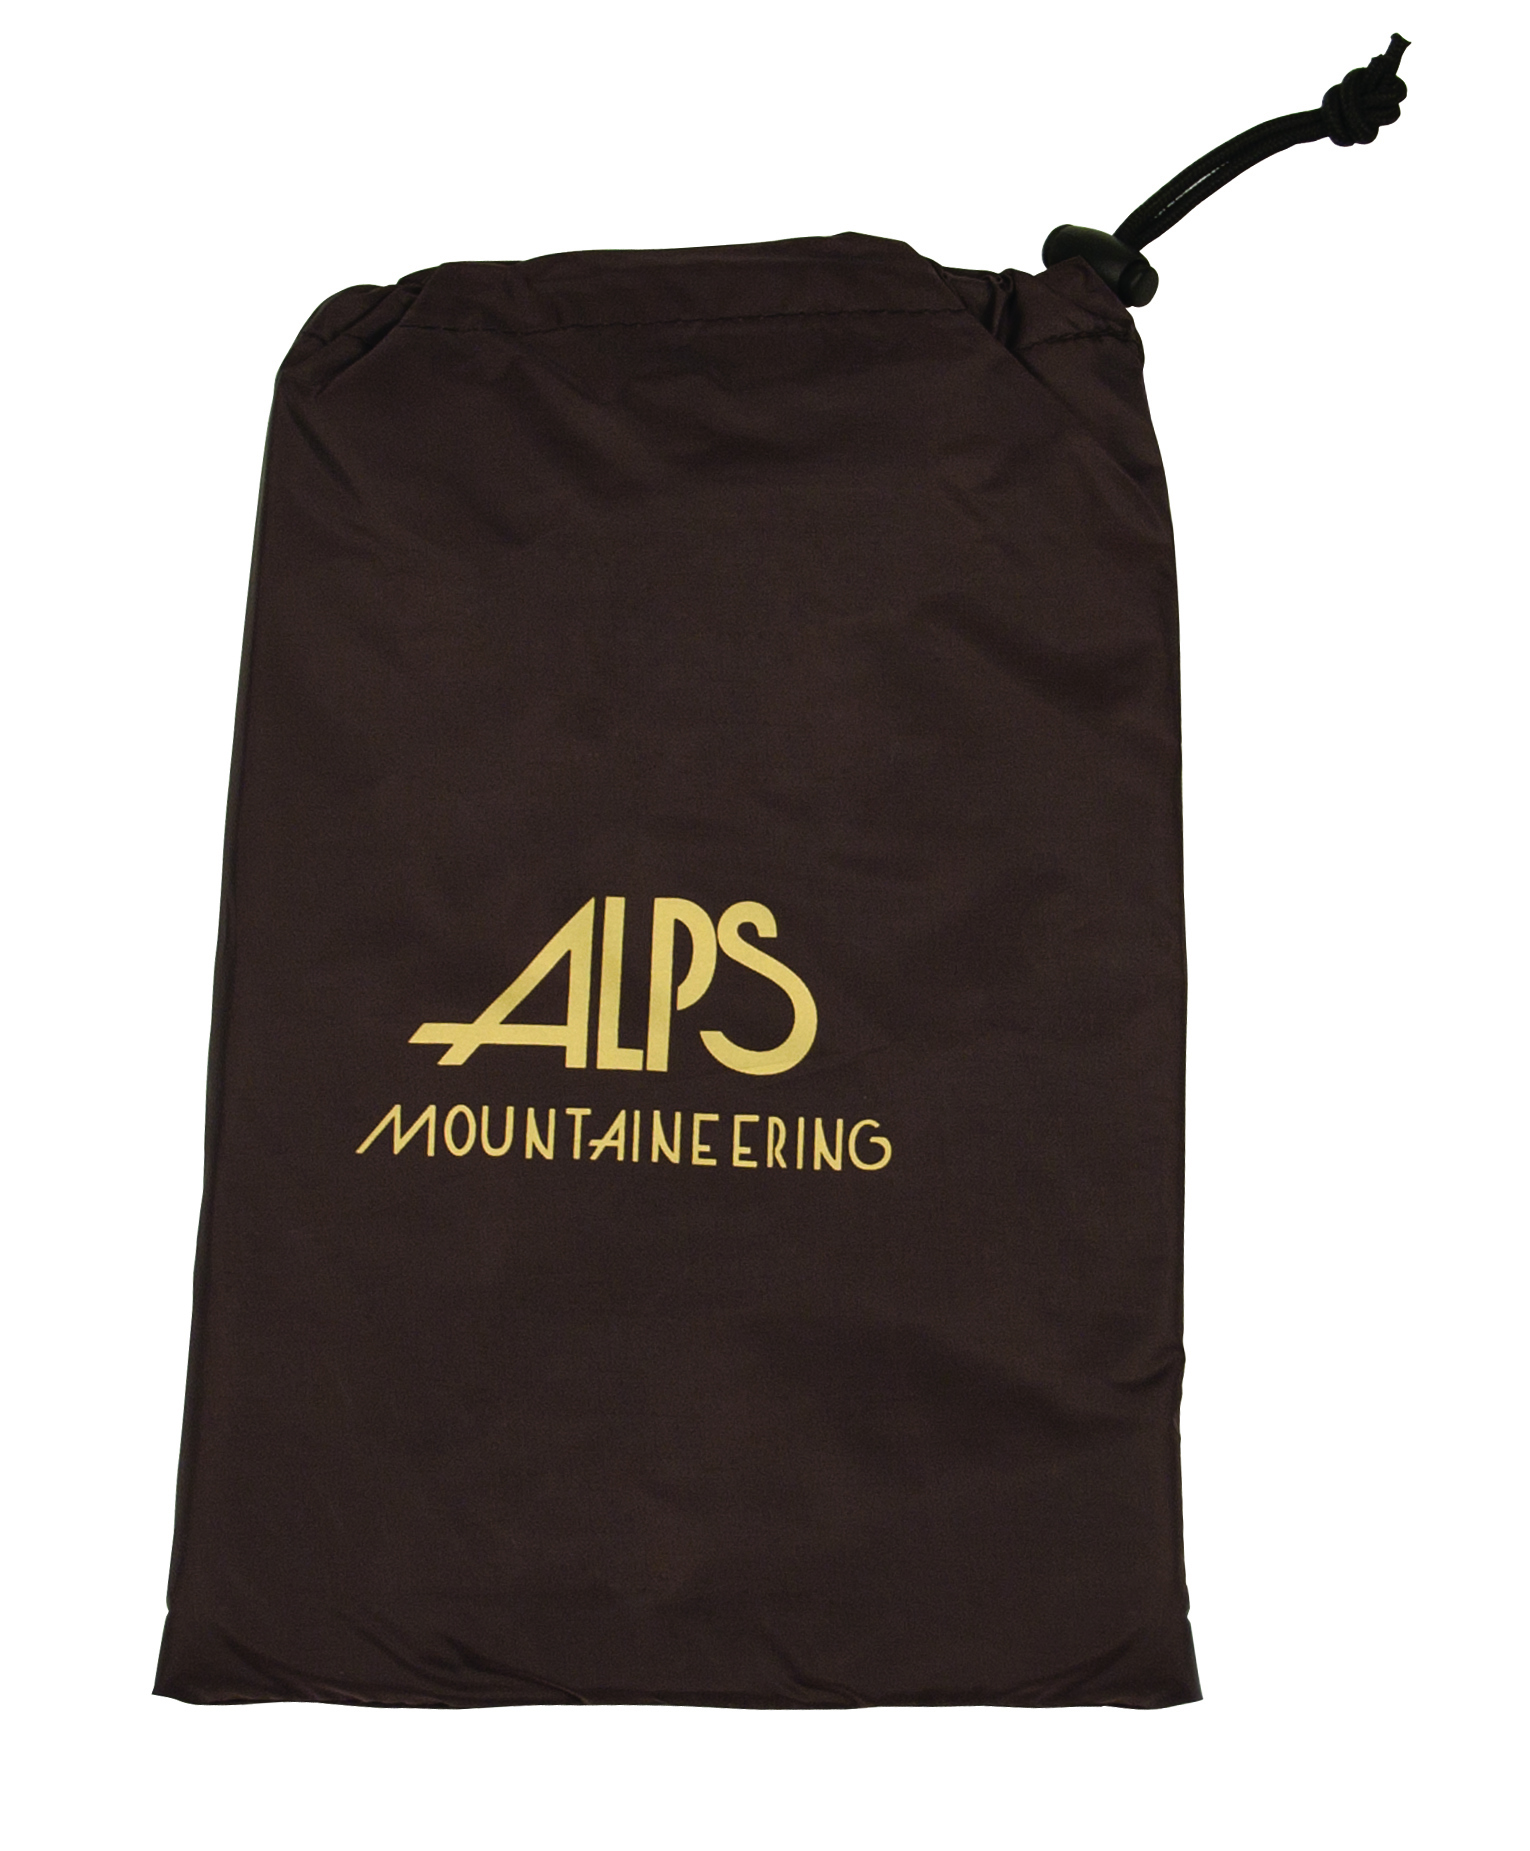 ALPS Mountaineering Tasmanian 3 Floor Saver